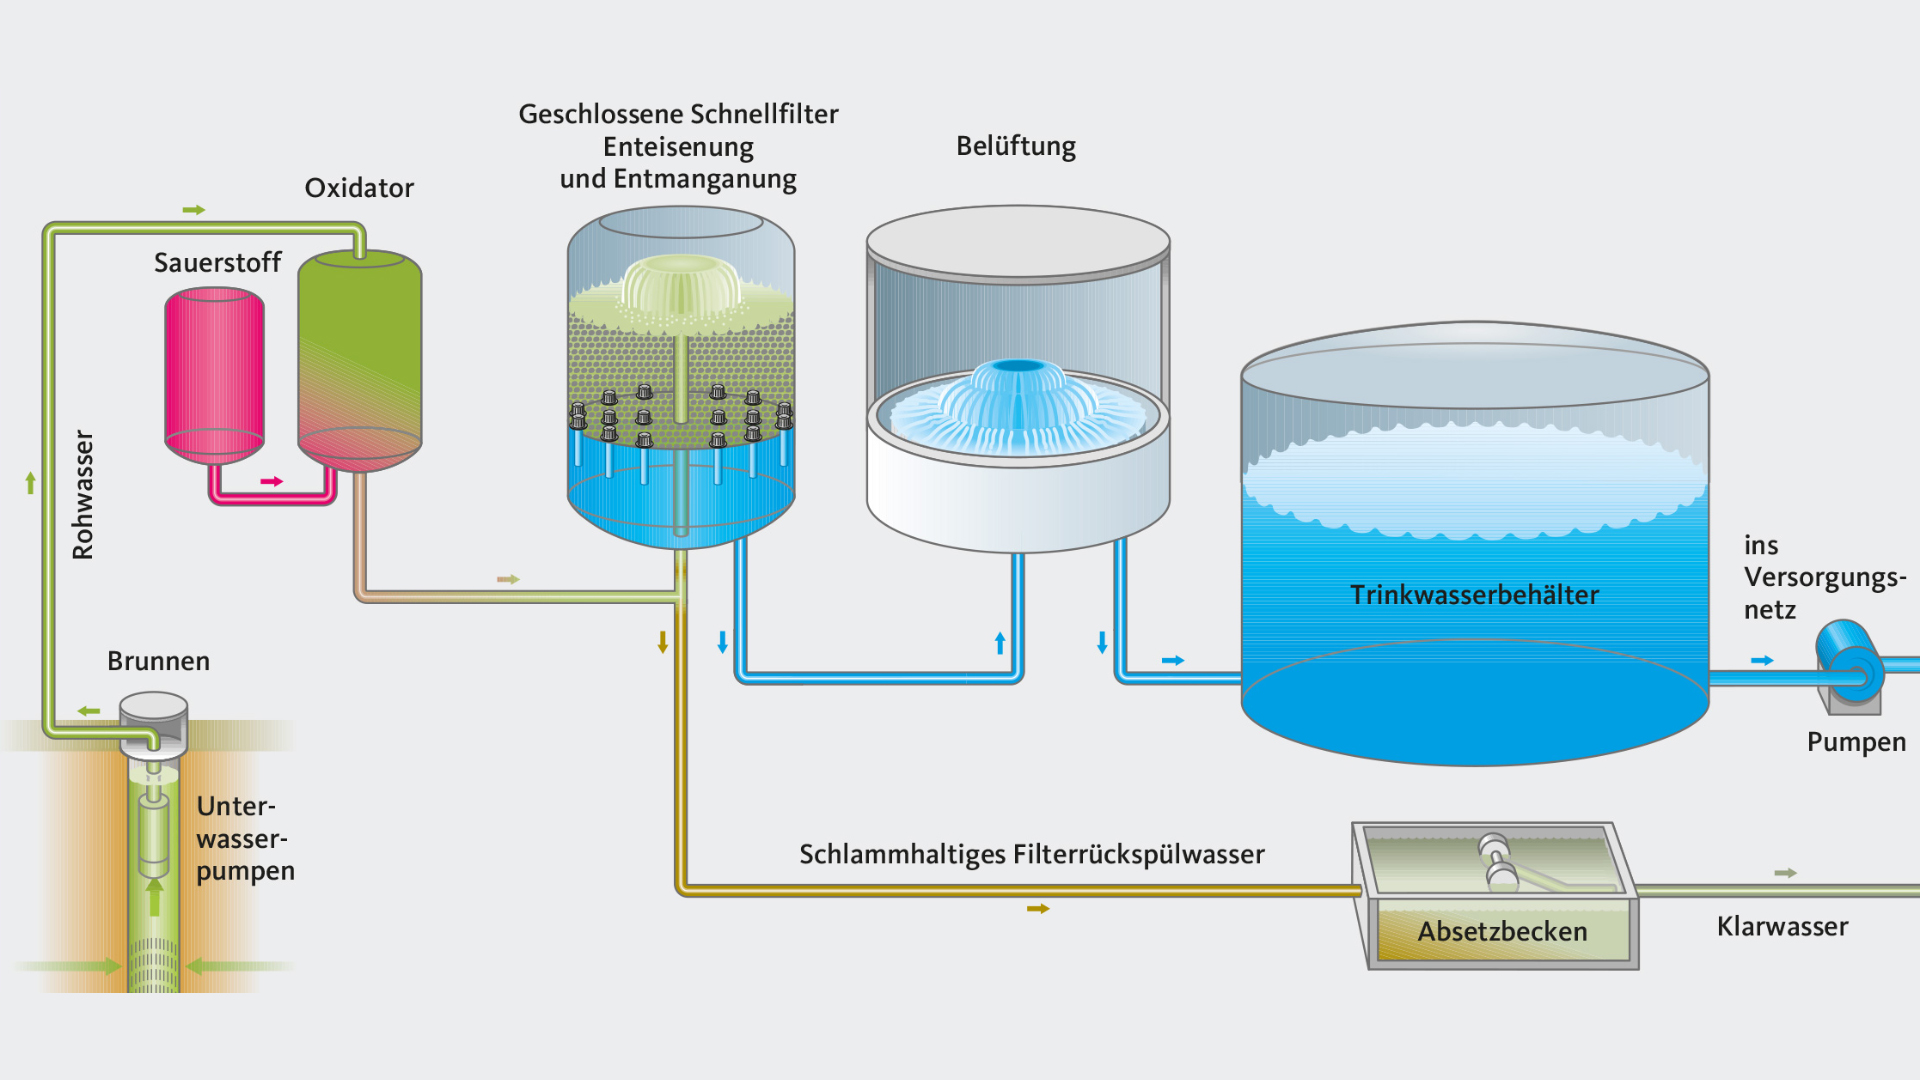 Flow chart of water treatment process at Hamburg Waldörfer Waterworks